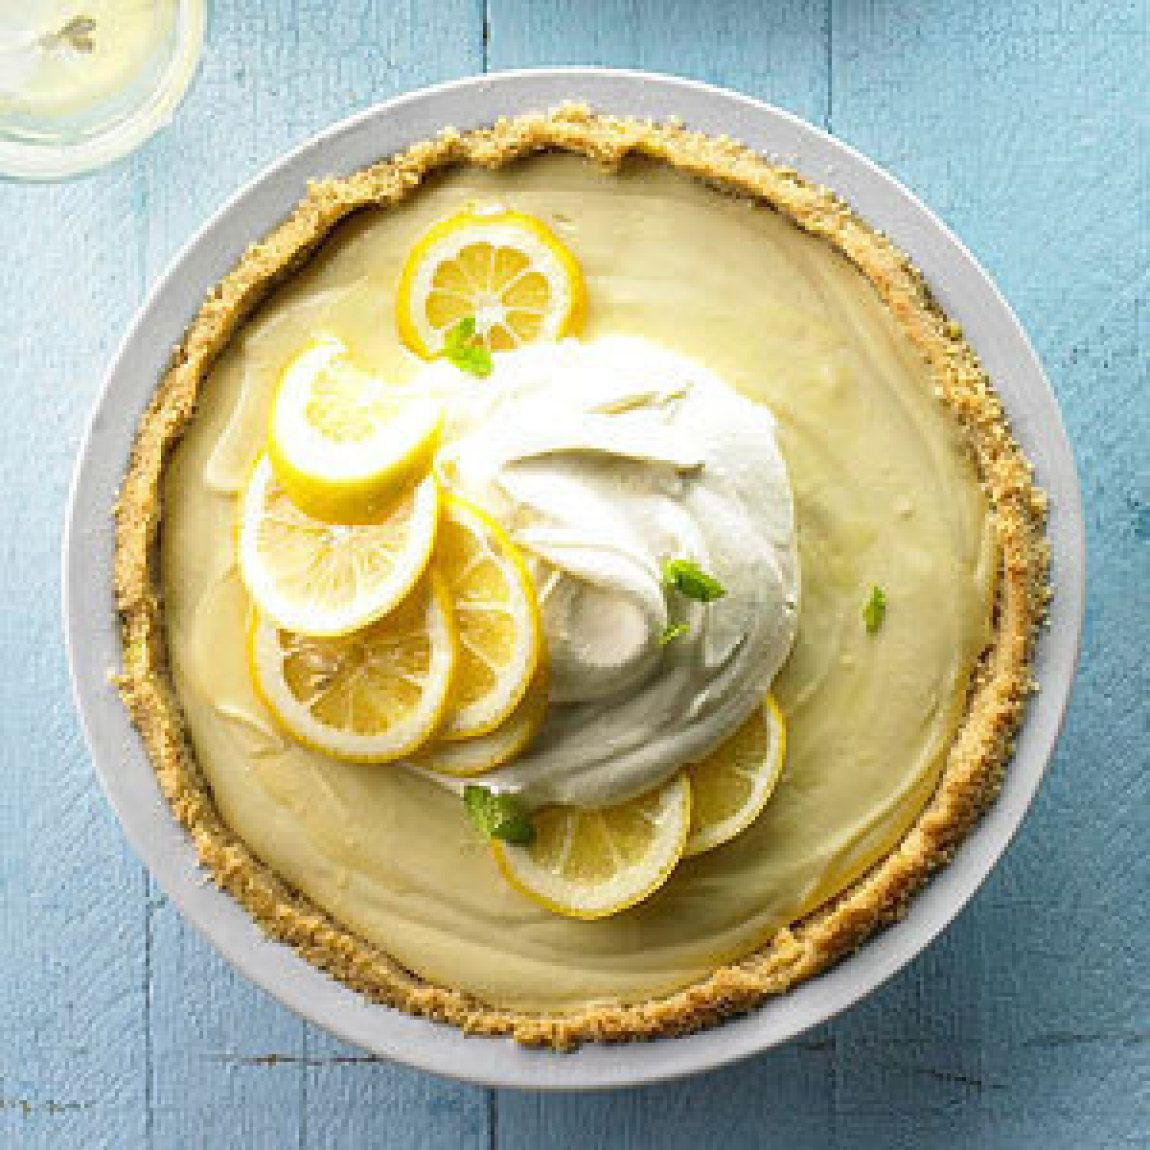 Better homes and garden lemon icebox pie recipe in 2019 sweet treats pinterest for Better homes and gardens pie crust